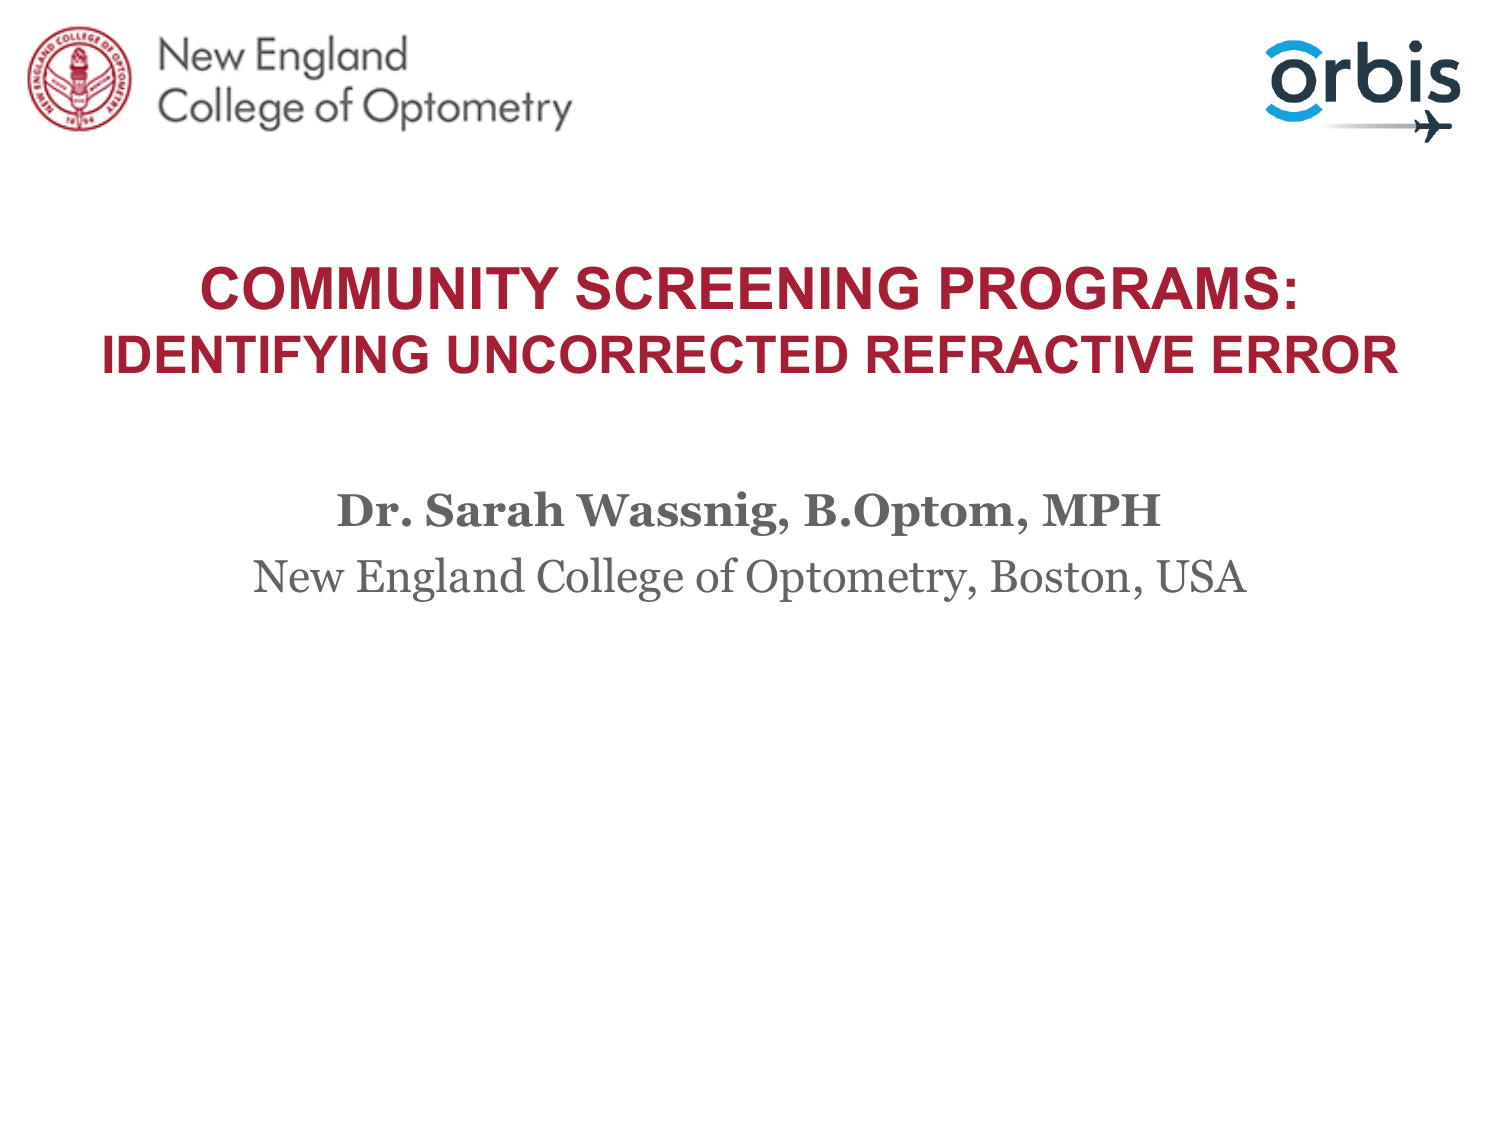 Community-Screening-Programs-Identifying-Undetected